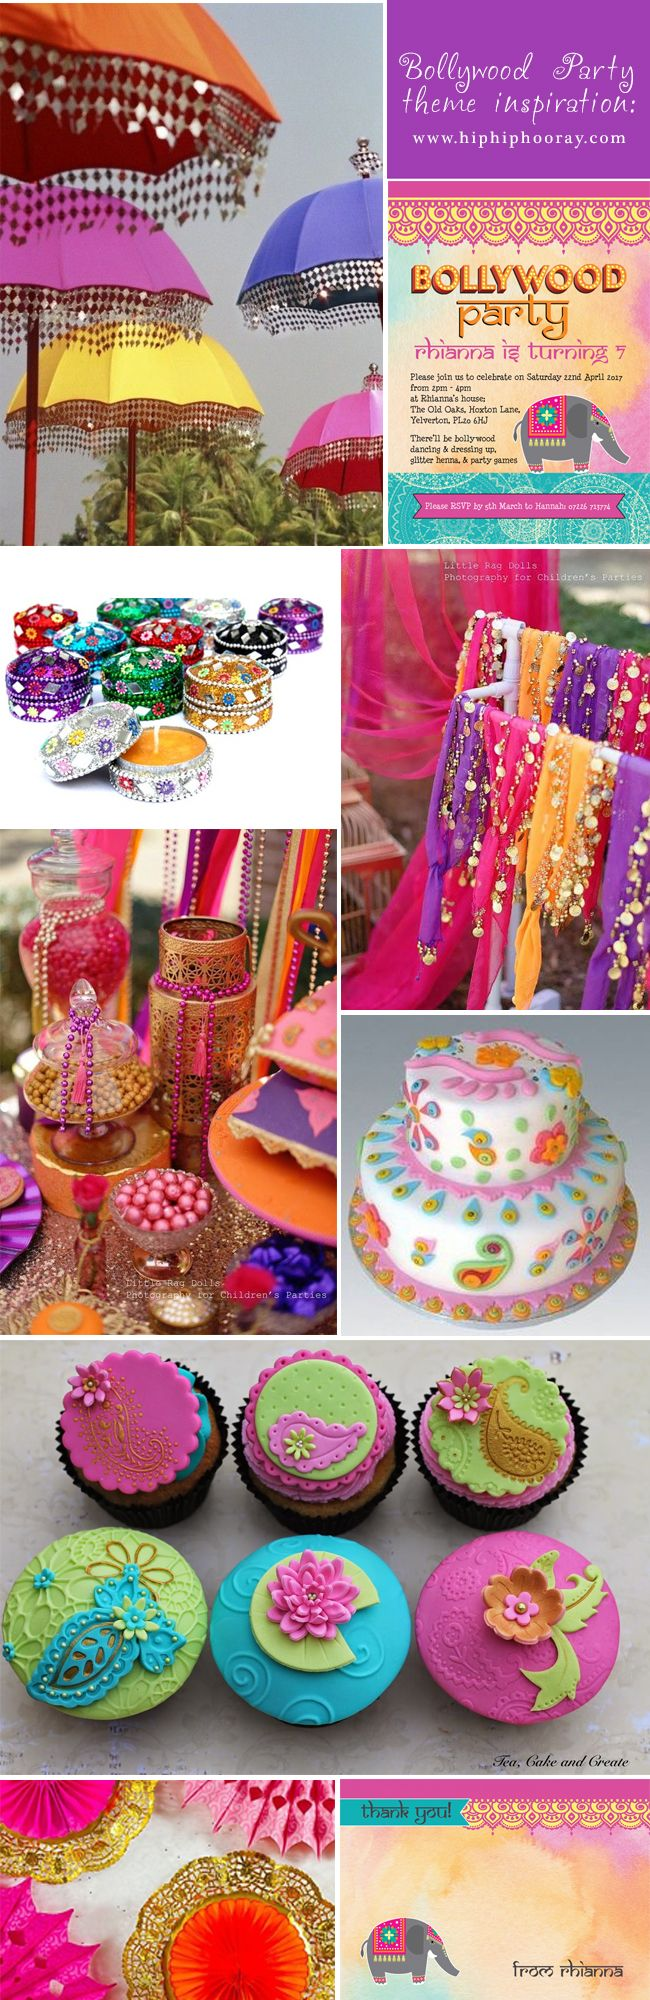 Bollywood children's birthday part themes, ideas and stationery from HipHipHooray.com. Digital PDF invite downloads and DIY invitations, as well as printable thank you cards and designs. Personalise online with your own text. Our designs include Bollywood Party invitations and thank you cards, perfect for any kids party. Also find inspiration for decorations, decor, themes, favours, food, cakes and more!